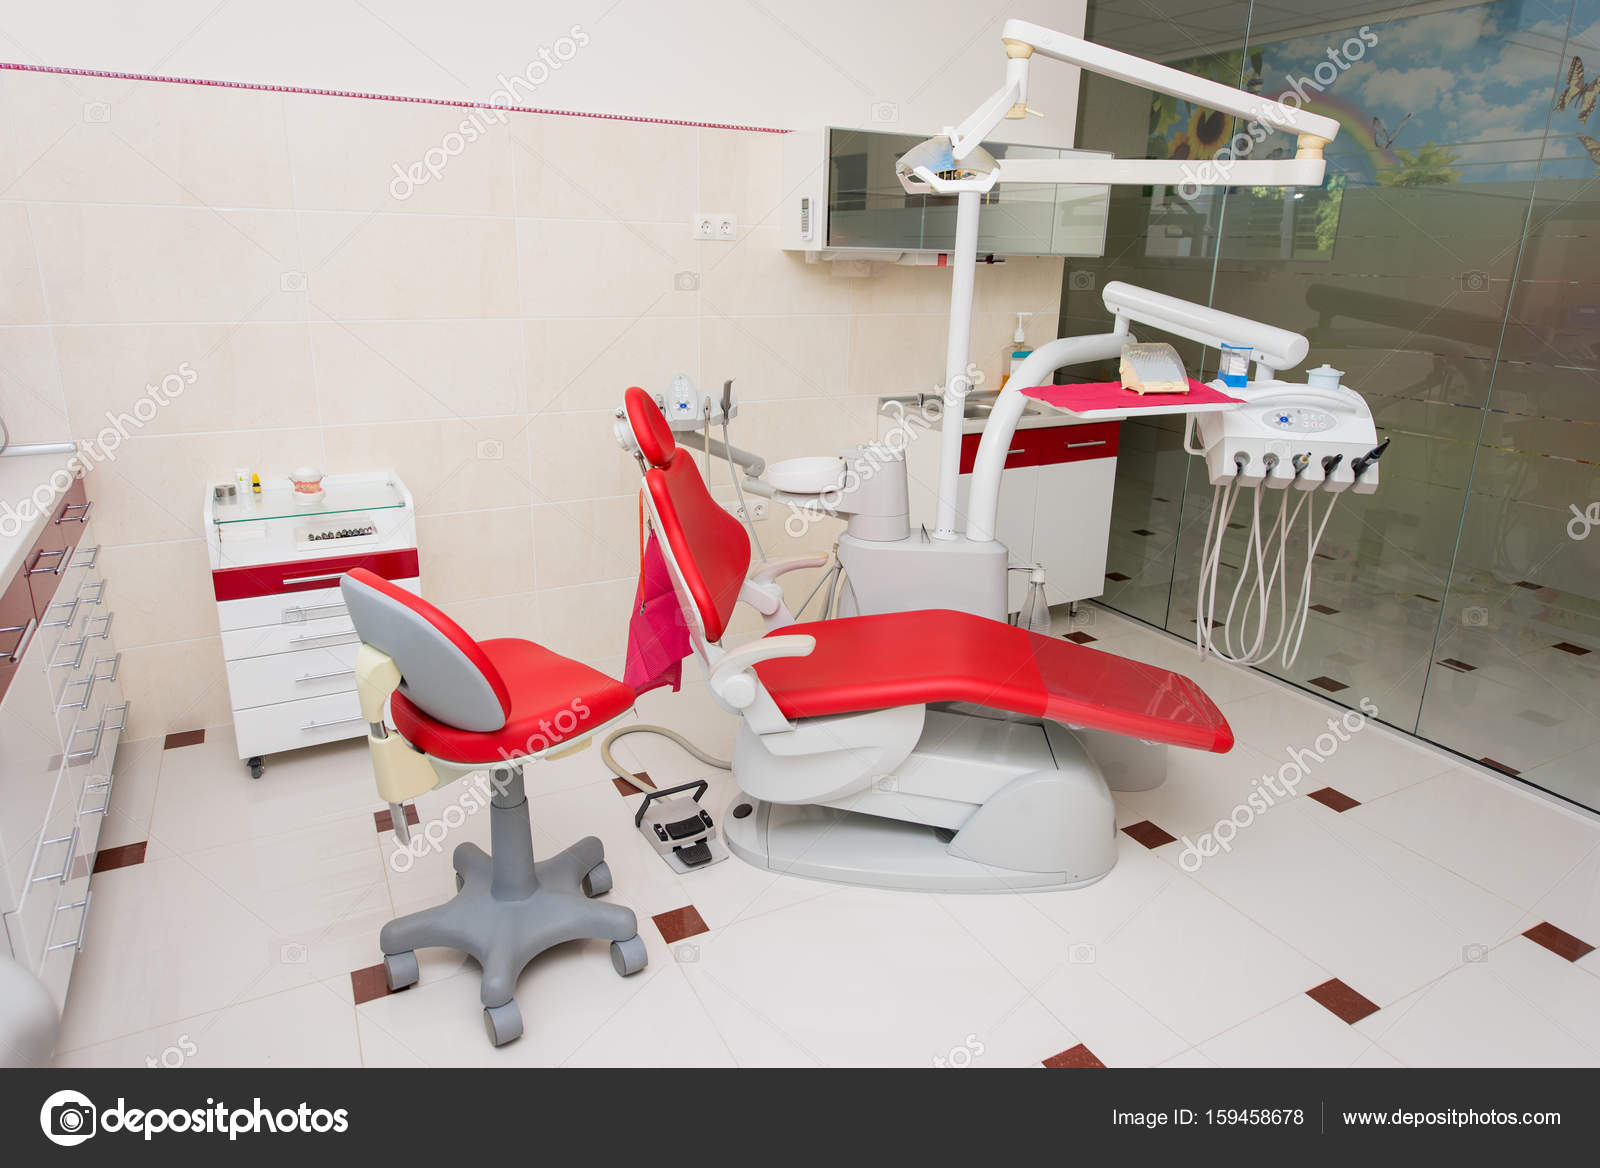 modern interior office stock. Dental Clinic With Modern Interior Design And Big Window. Chair, Equipment, Tools Other Accessories Used By Dentists. Office Stock E